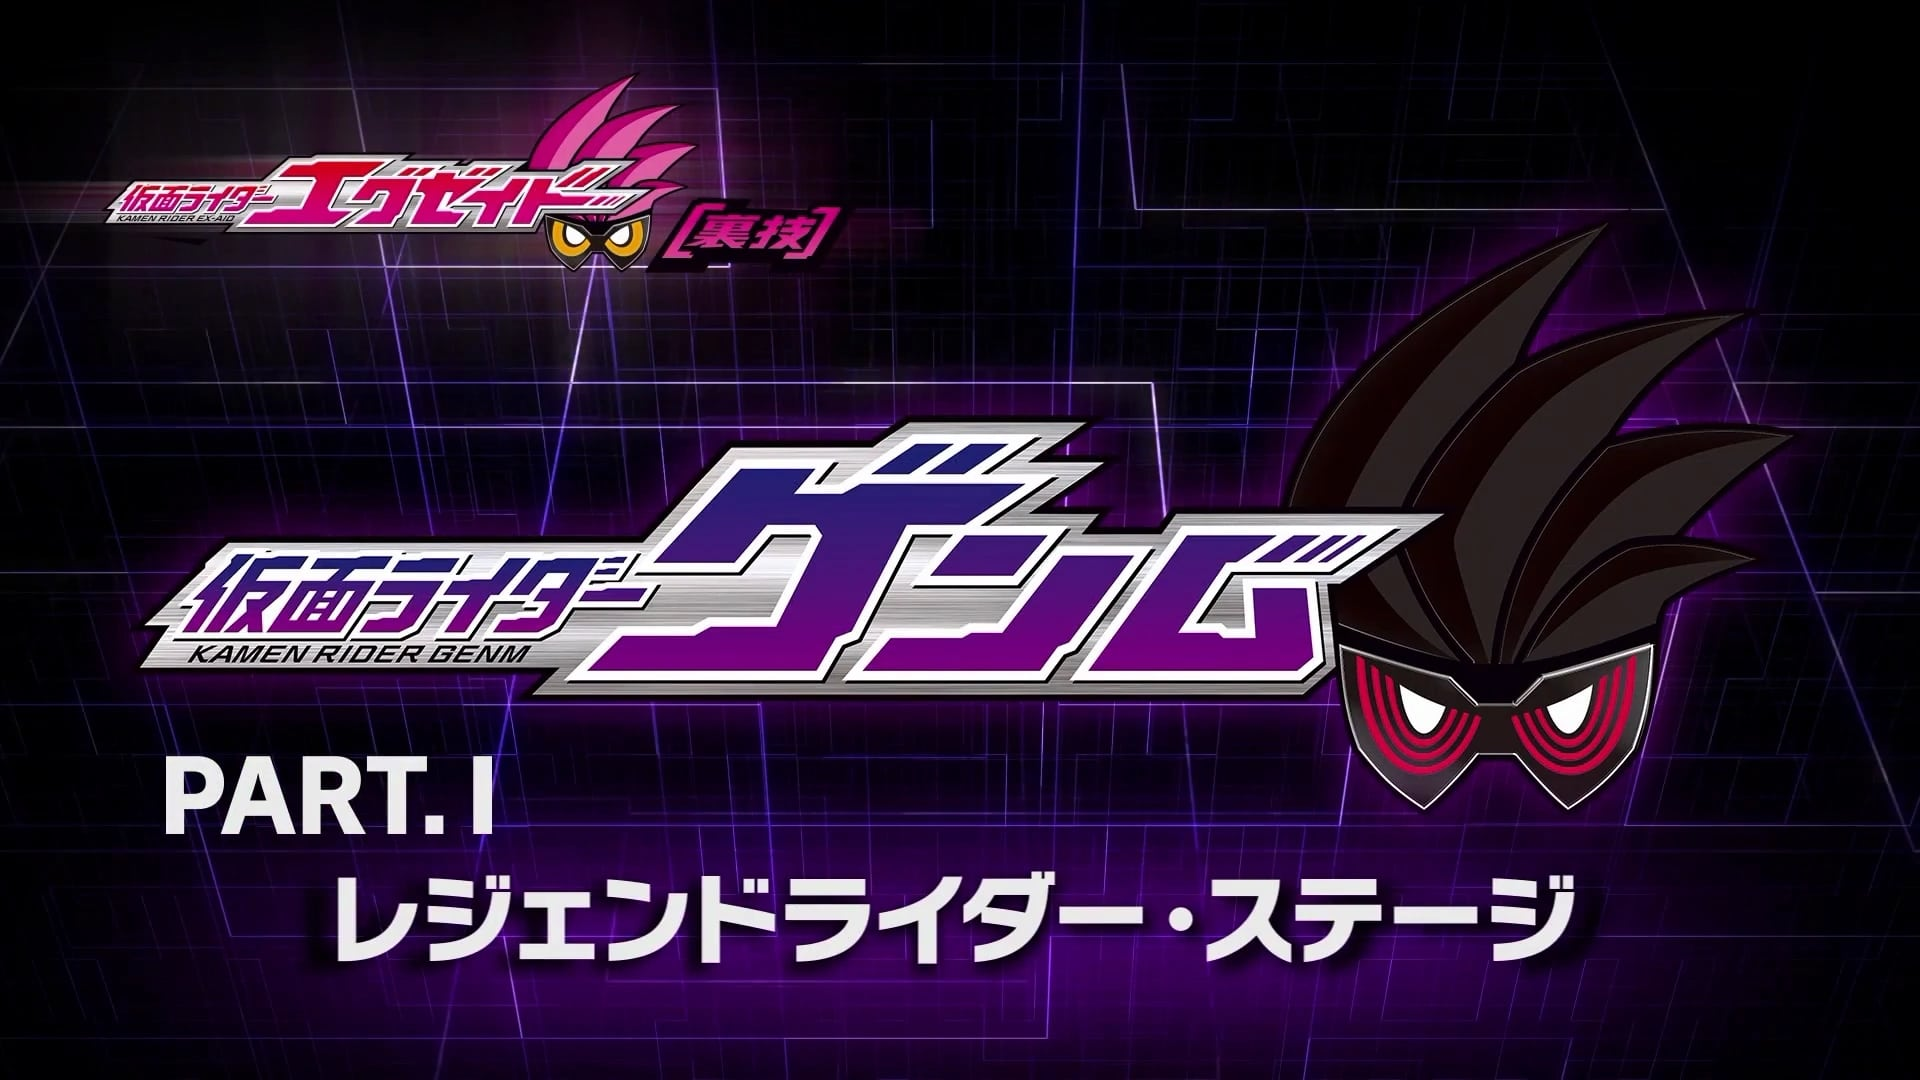 Kamen Rider Season 0 :Episode 6  Kamen Rider Ex-Aid [Tricks] - Kamen Rider Genm - Part. I: Legend Rider Stage